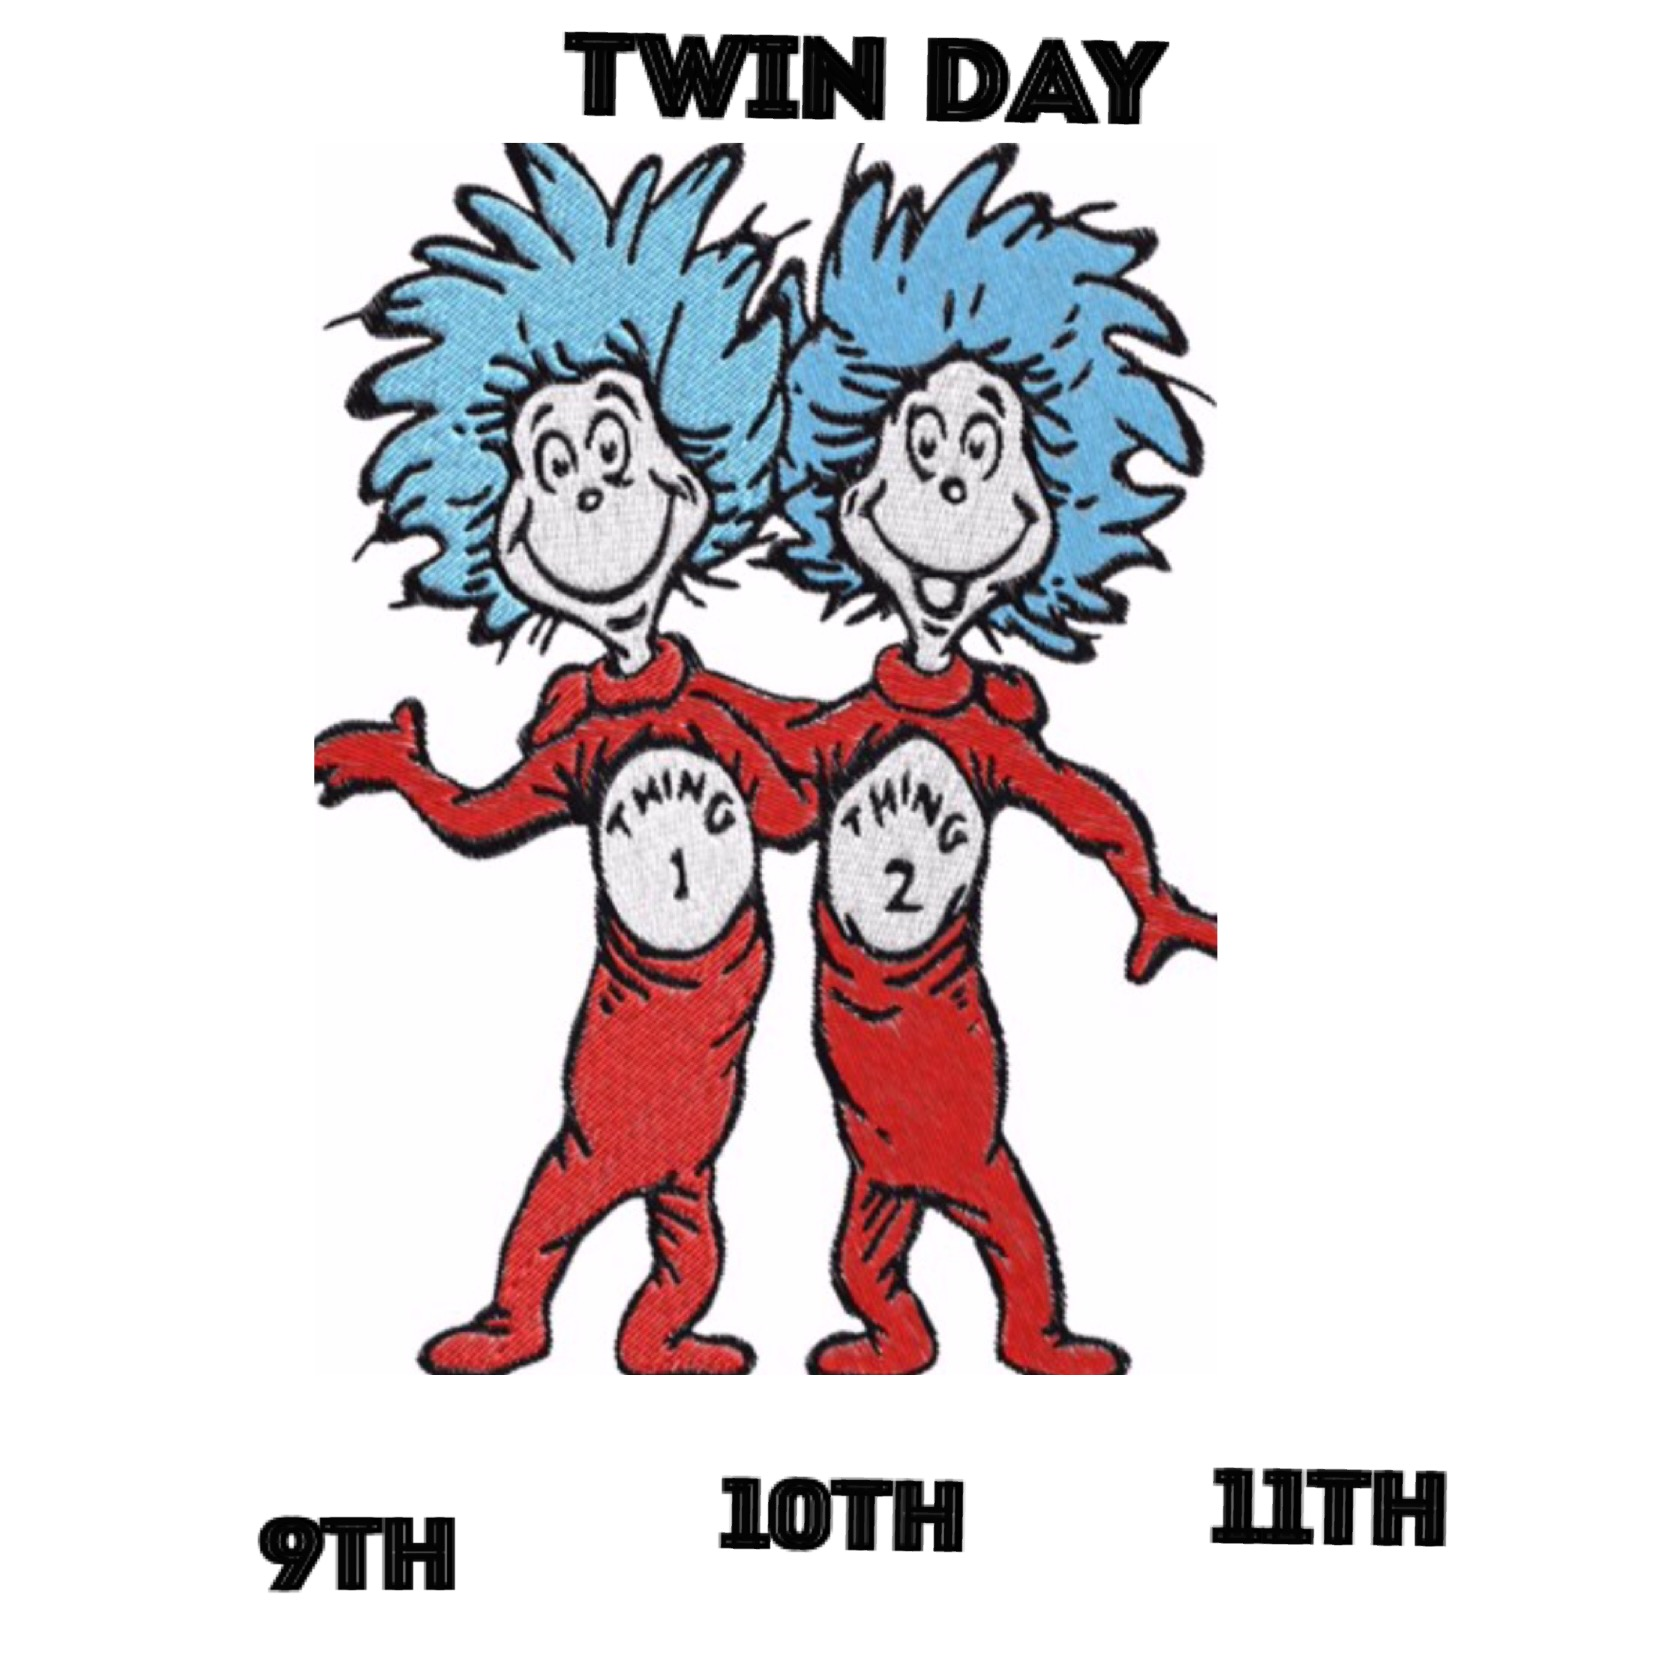 Spirit Week Announcement for Monday is Twin day